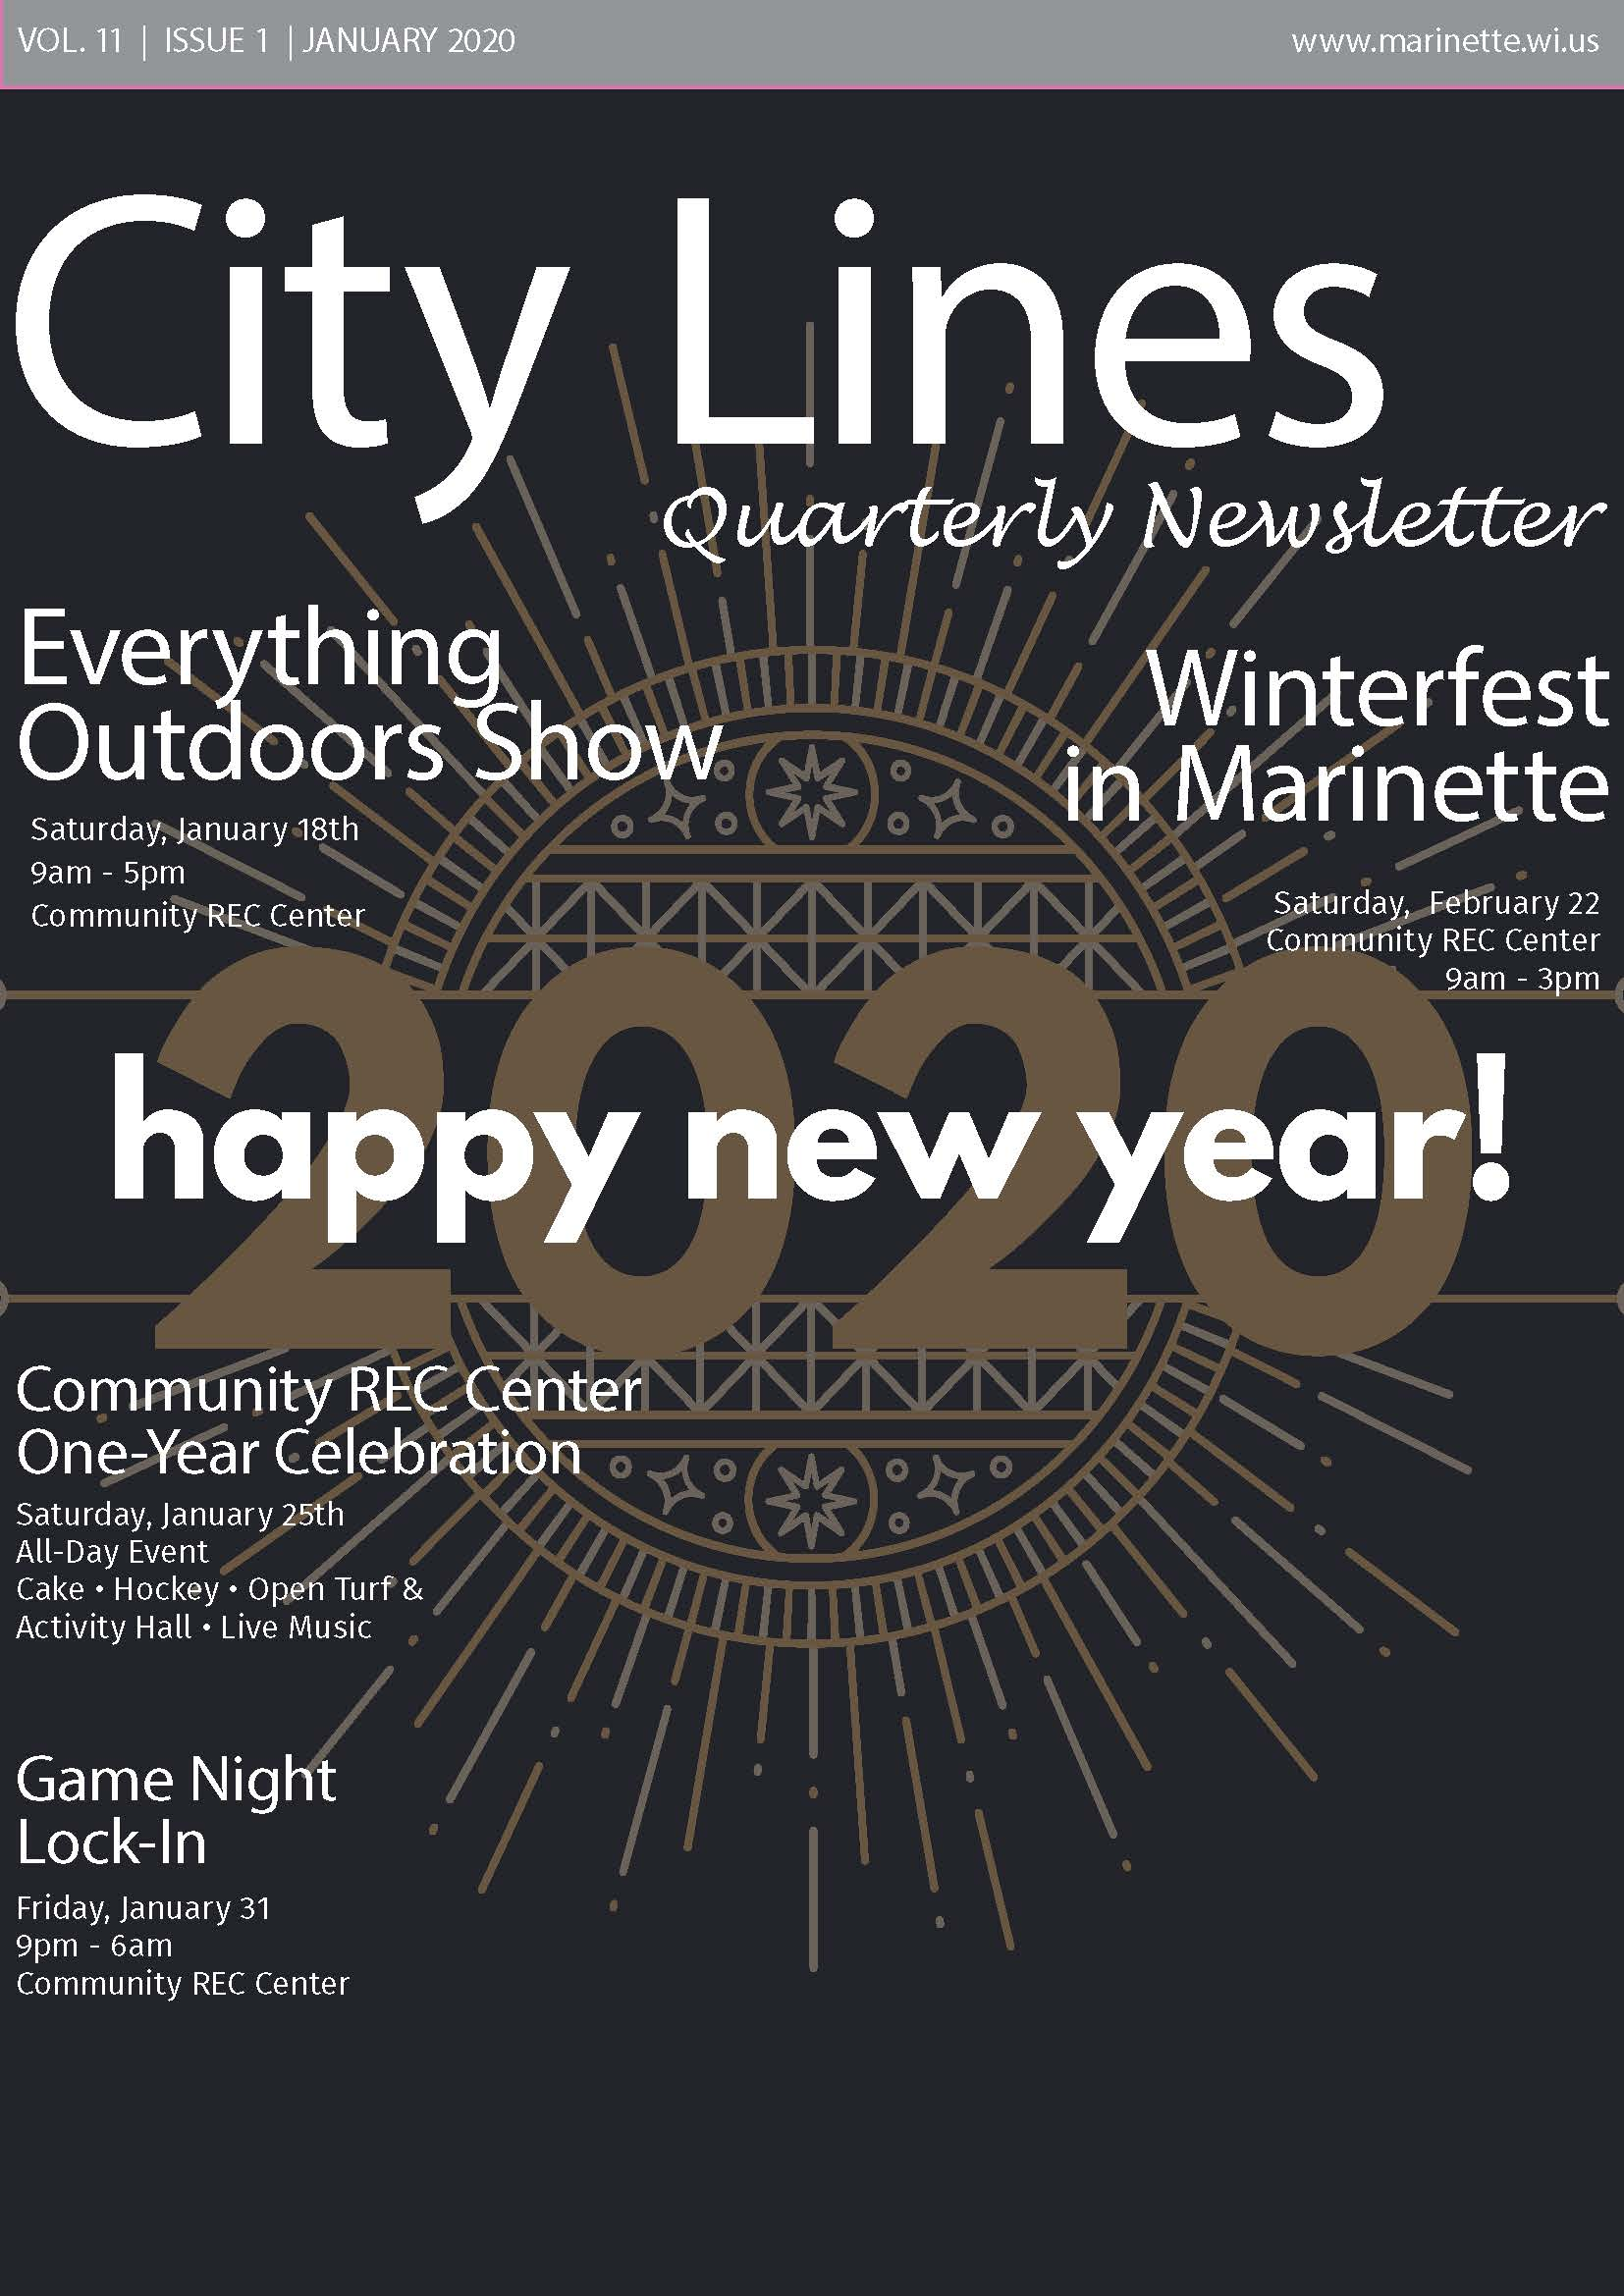 CITY LINES NEWSLETTER_TEMPLATE_JANUARY 2020_Page_1